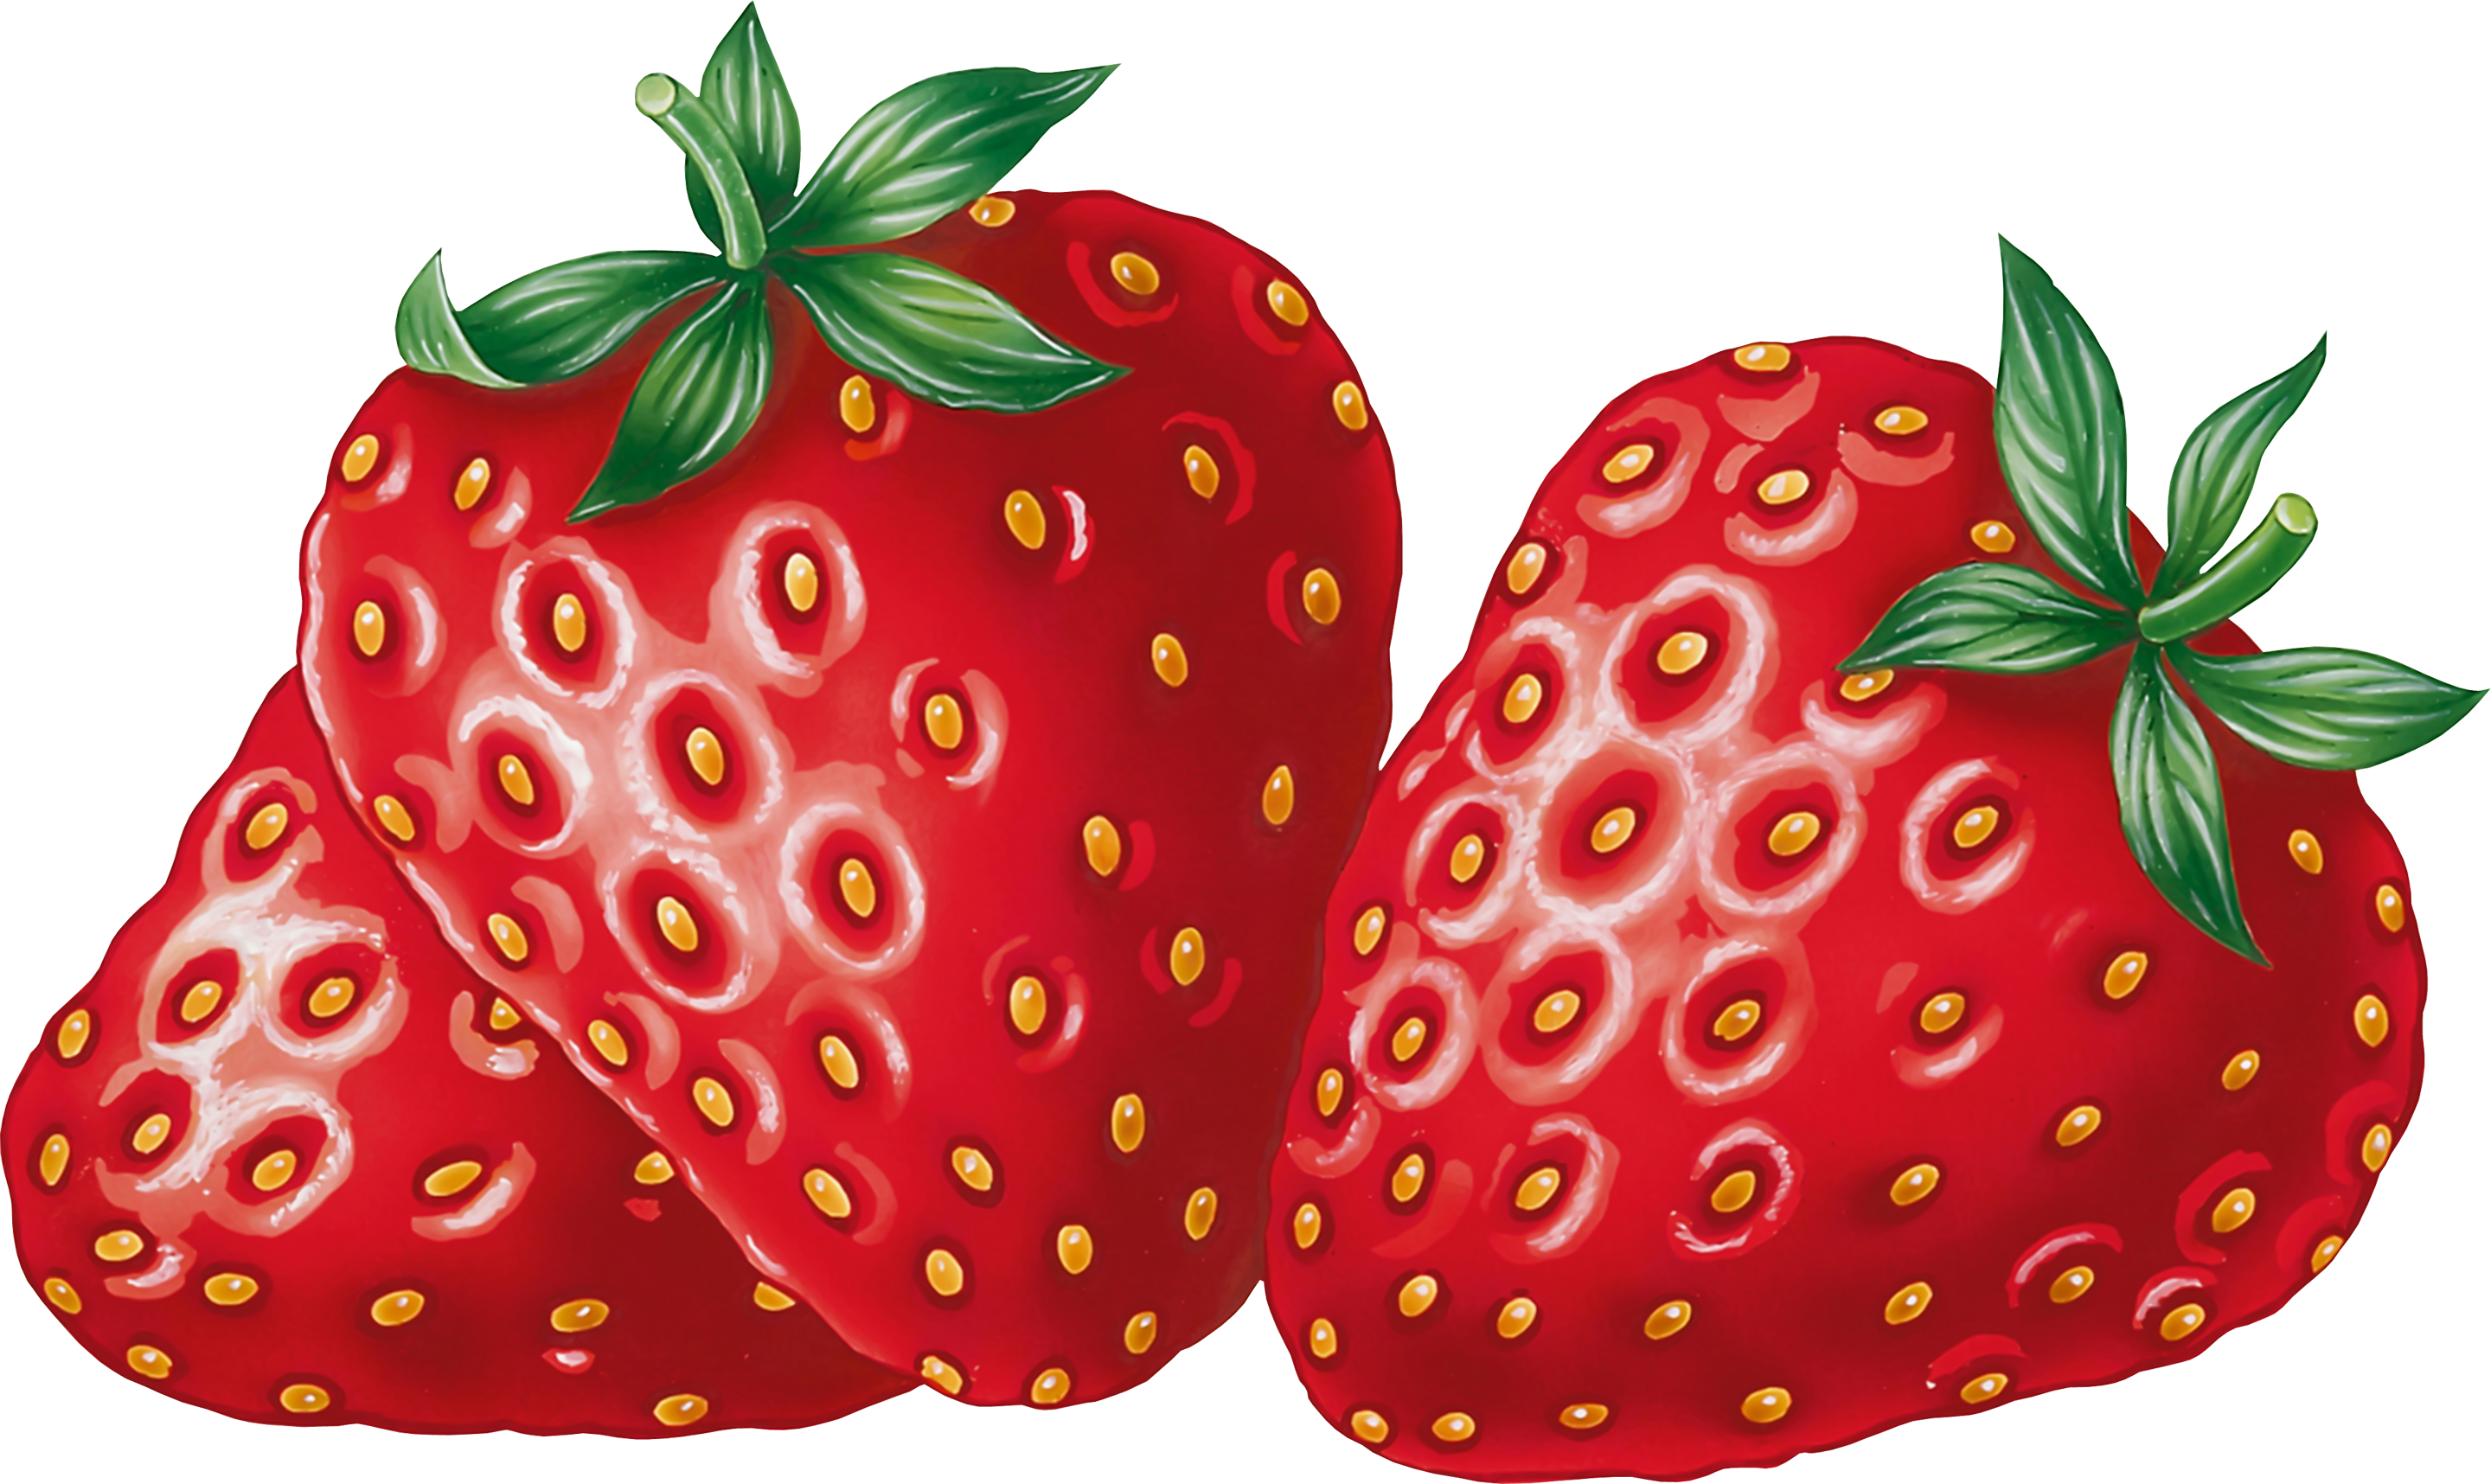 Clipart Strawberry & Strawberry Clip Art Images.